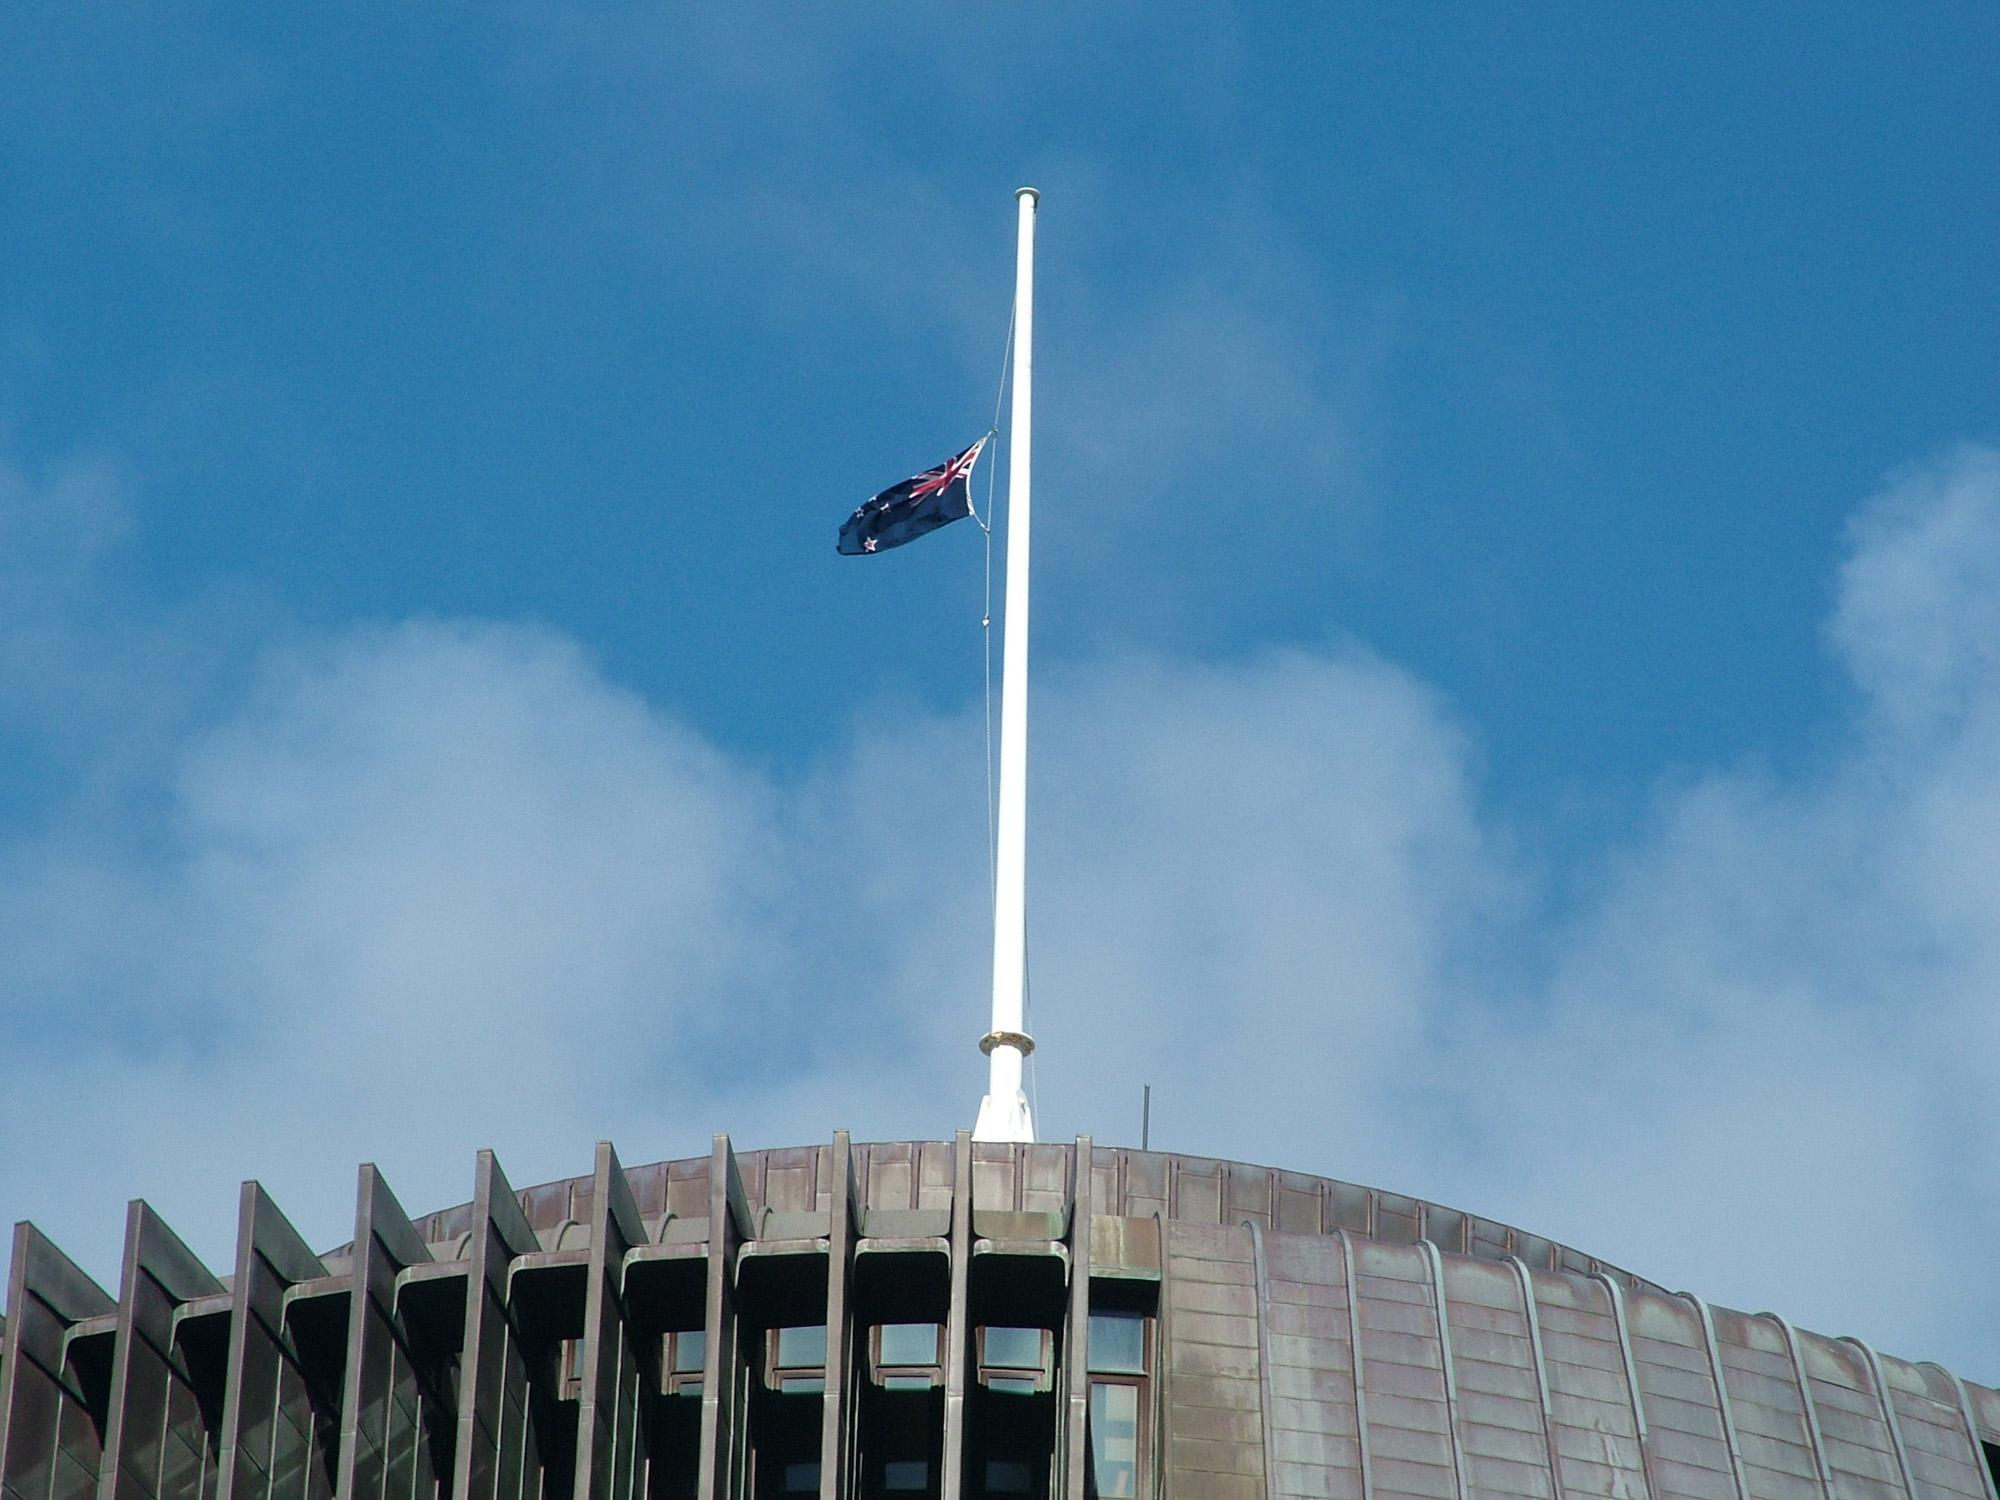 Images: Flags At Half Mast For Sir Ed | Scoop News